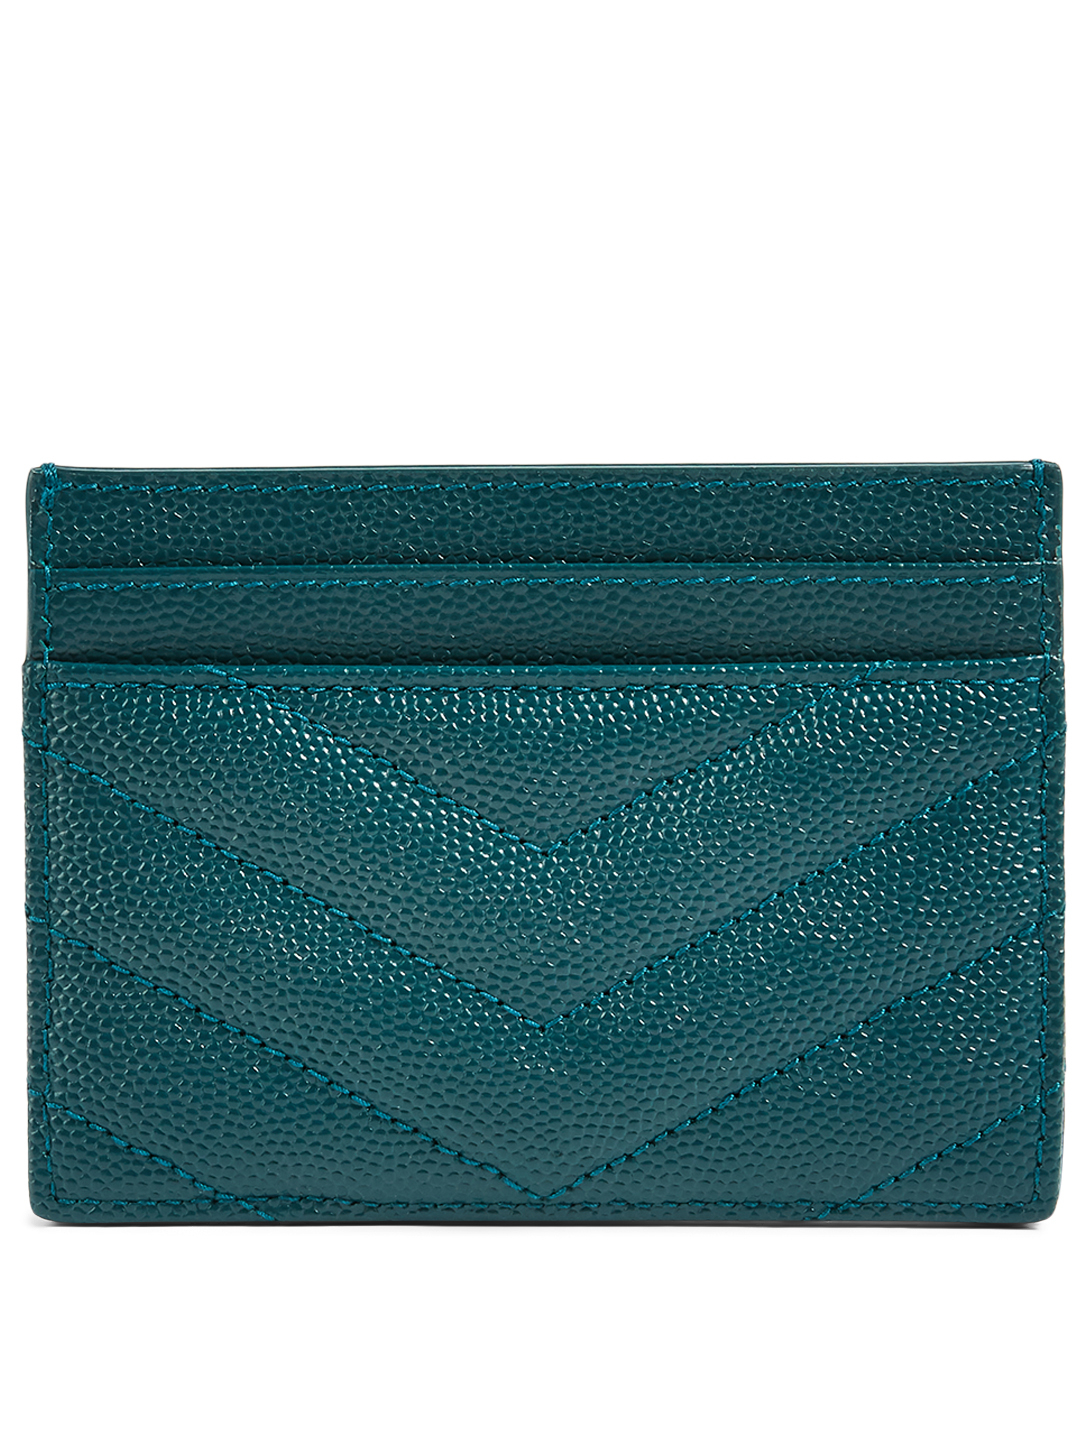 SAINT LAURENT YSL Monogram Leather Card Holder Women's Green